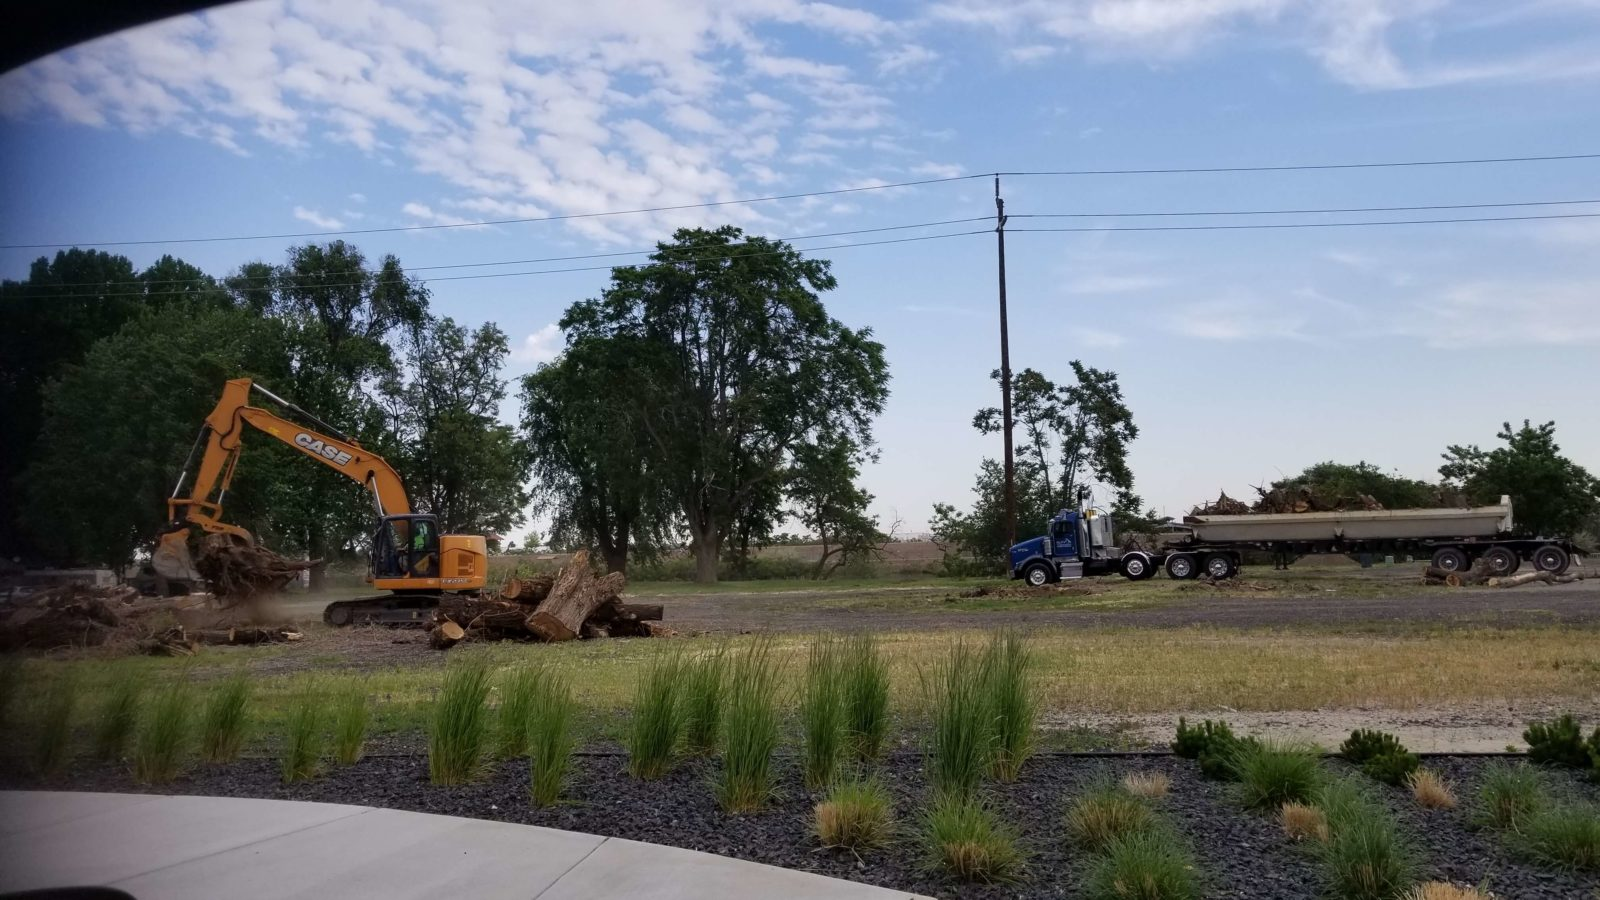 Construction equipment removing trees in preparation for winery building.